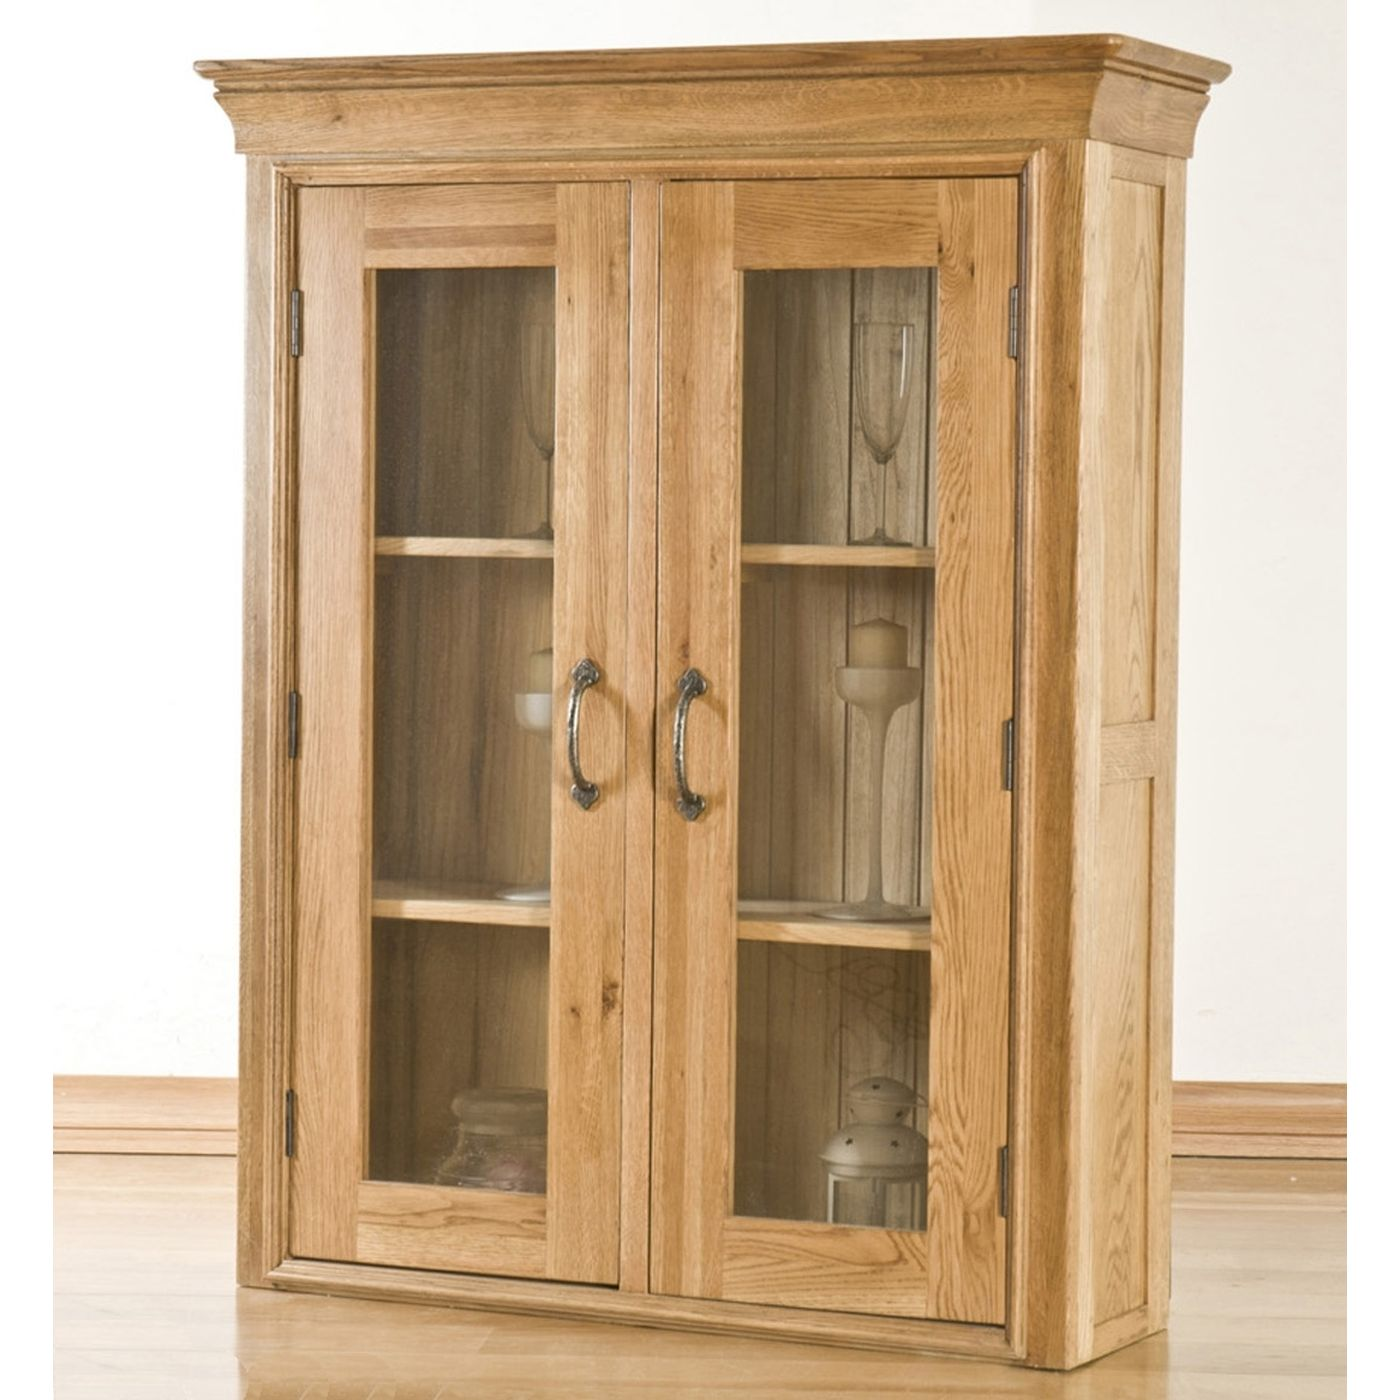 Toulon solid oak furniture small dining room china display for Dining room display cabinets